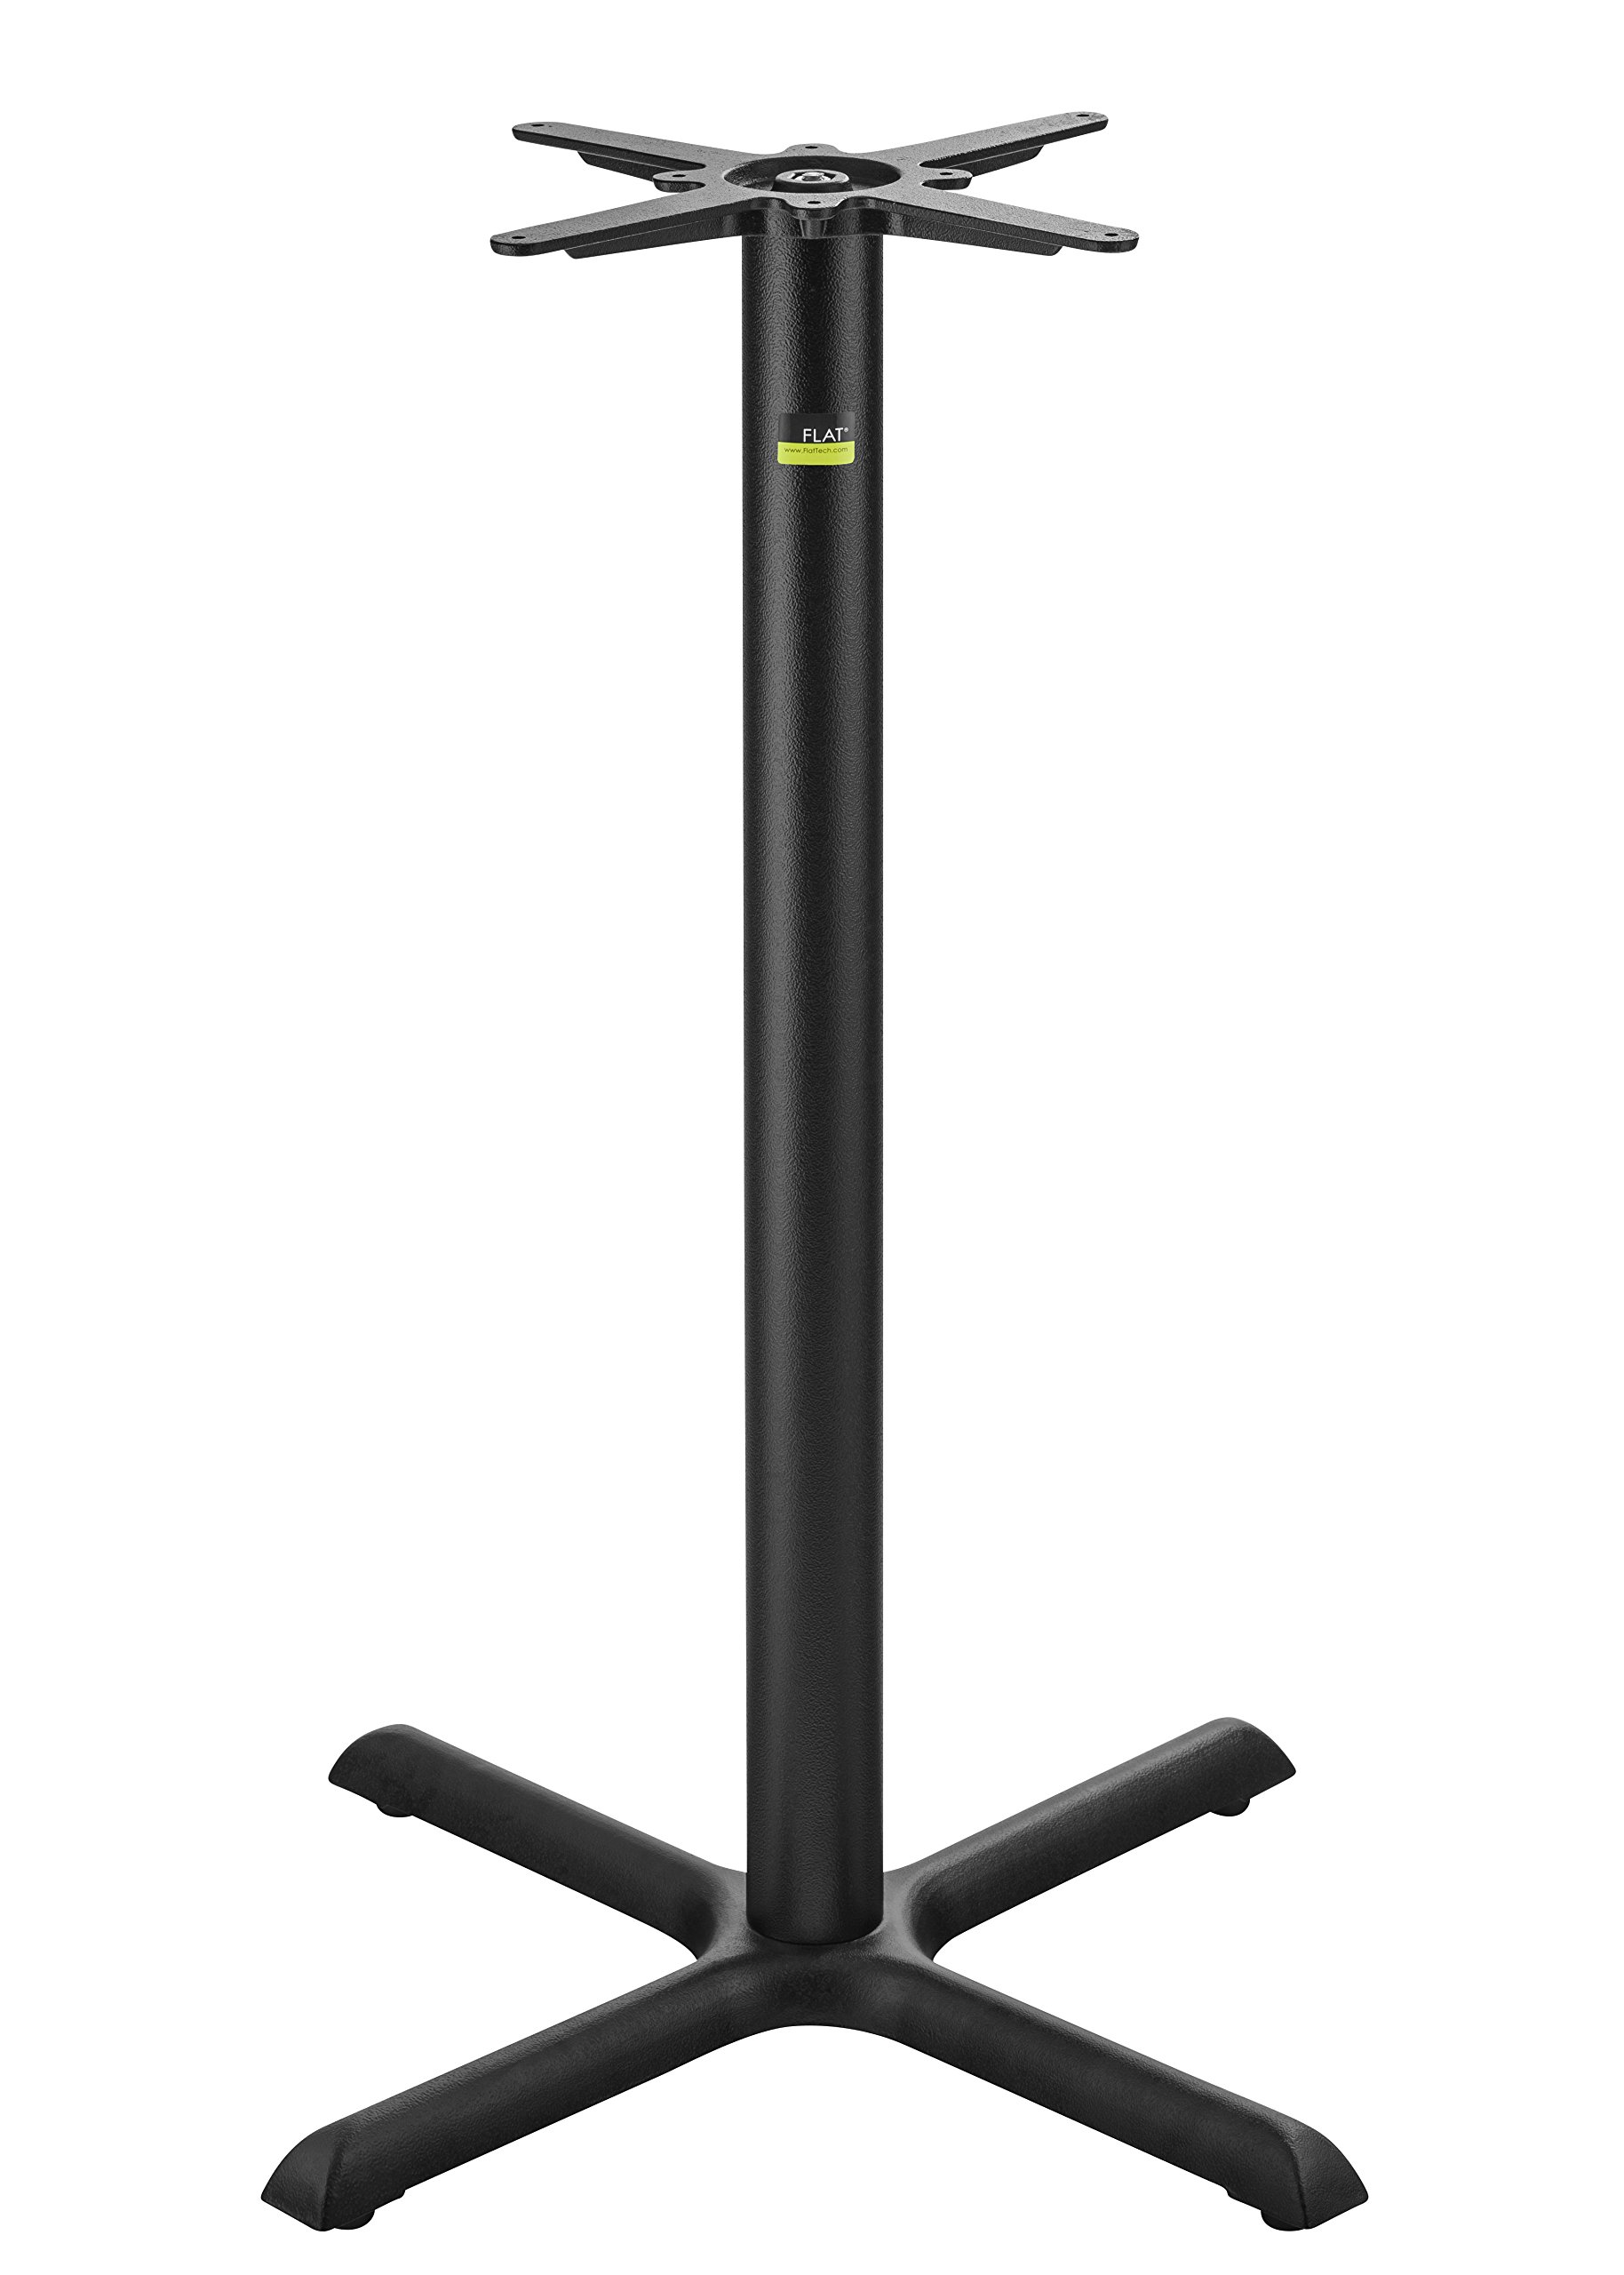 FLAT Self-Stabilizing KX30 (30'') Cast Iron, Bar Height Table Base